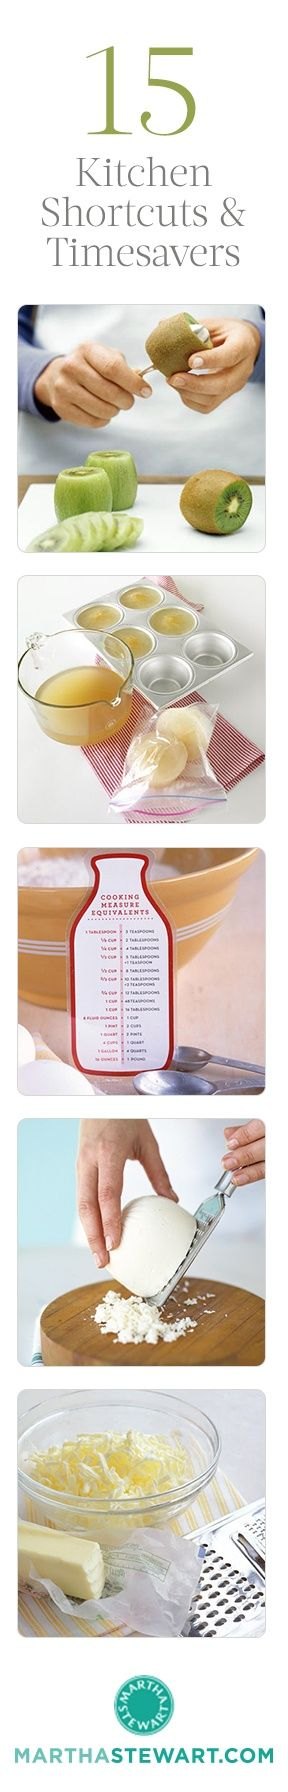 15 Kitchen Shortcuts and Timesavers // BRILLIANT!